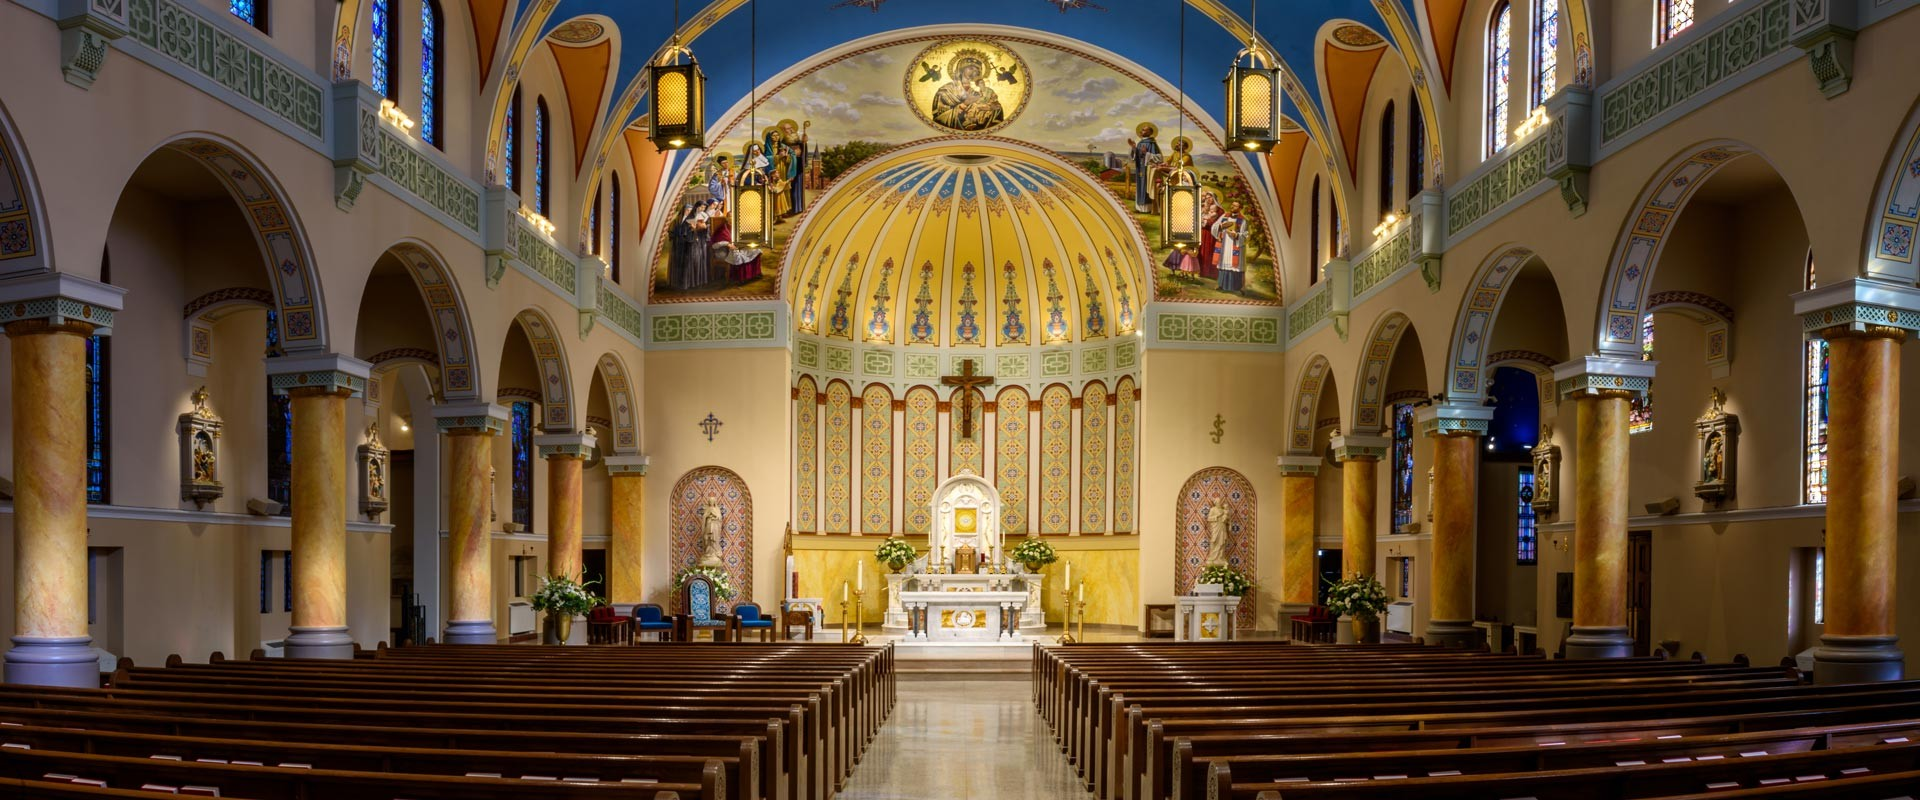 Interior Design and Renovation for the Cathedral of Our Lady of Perpetual Help